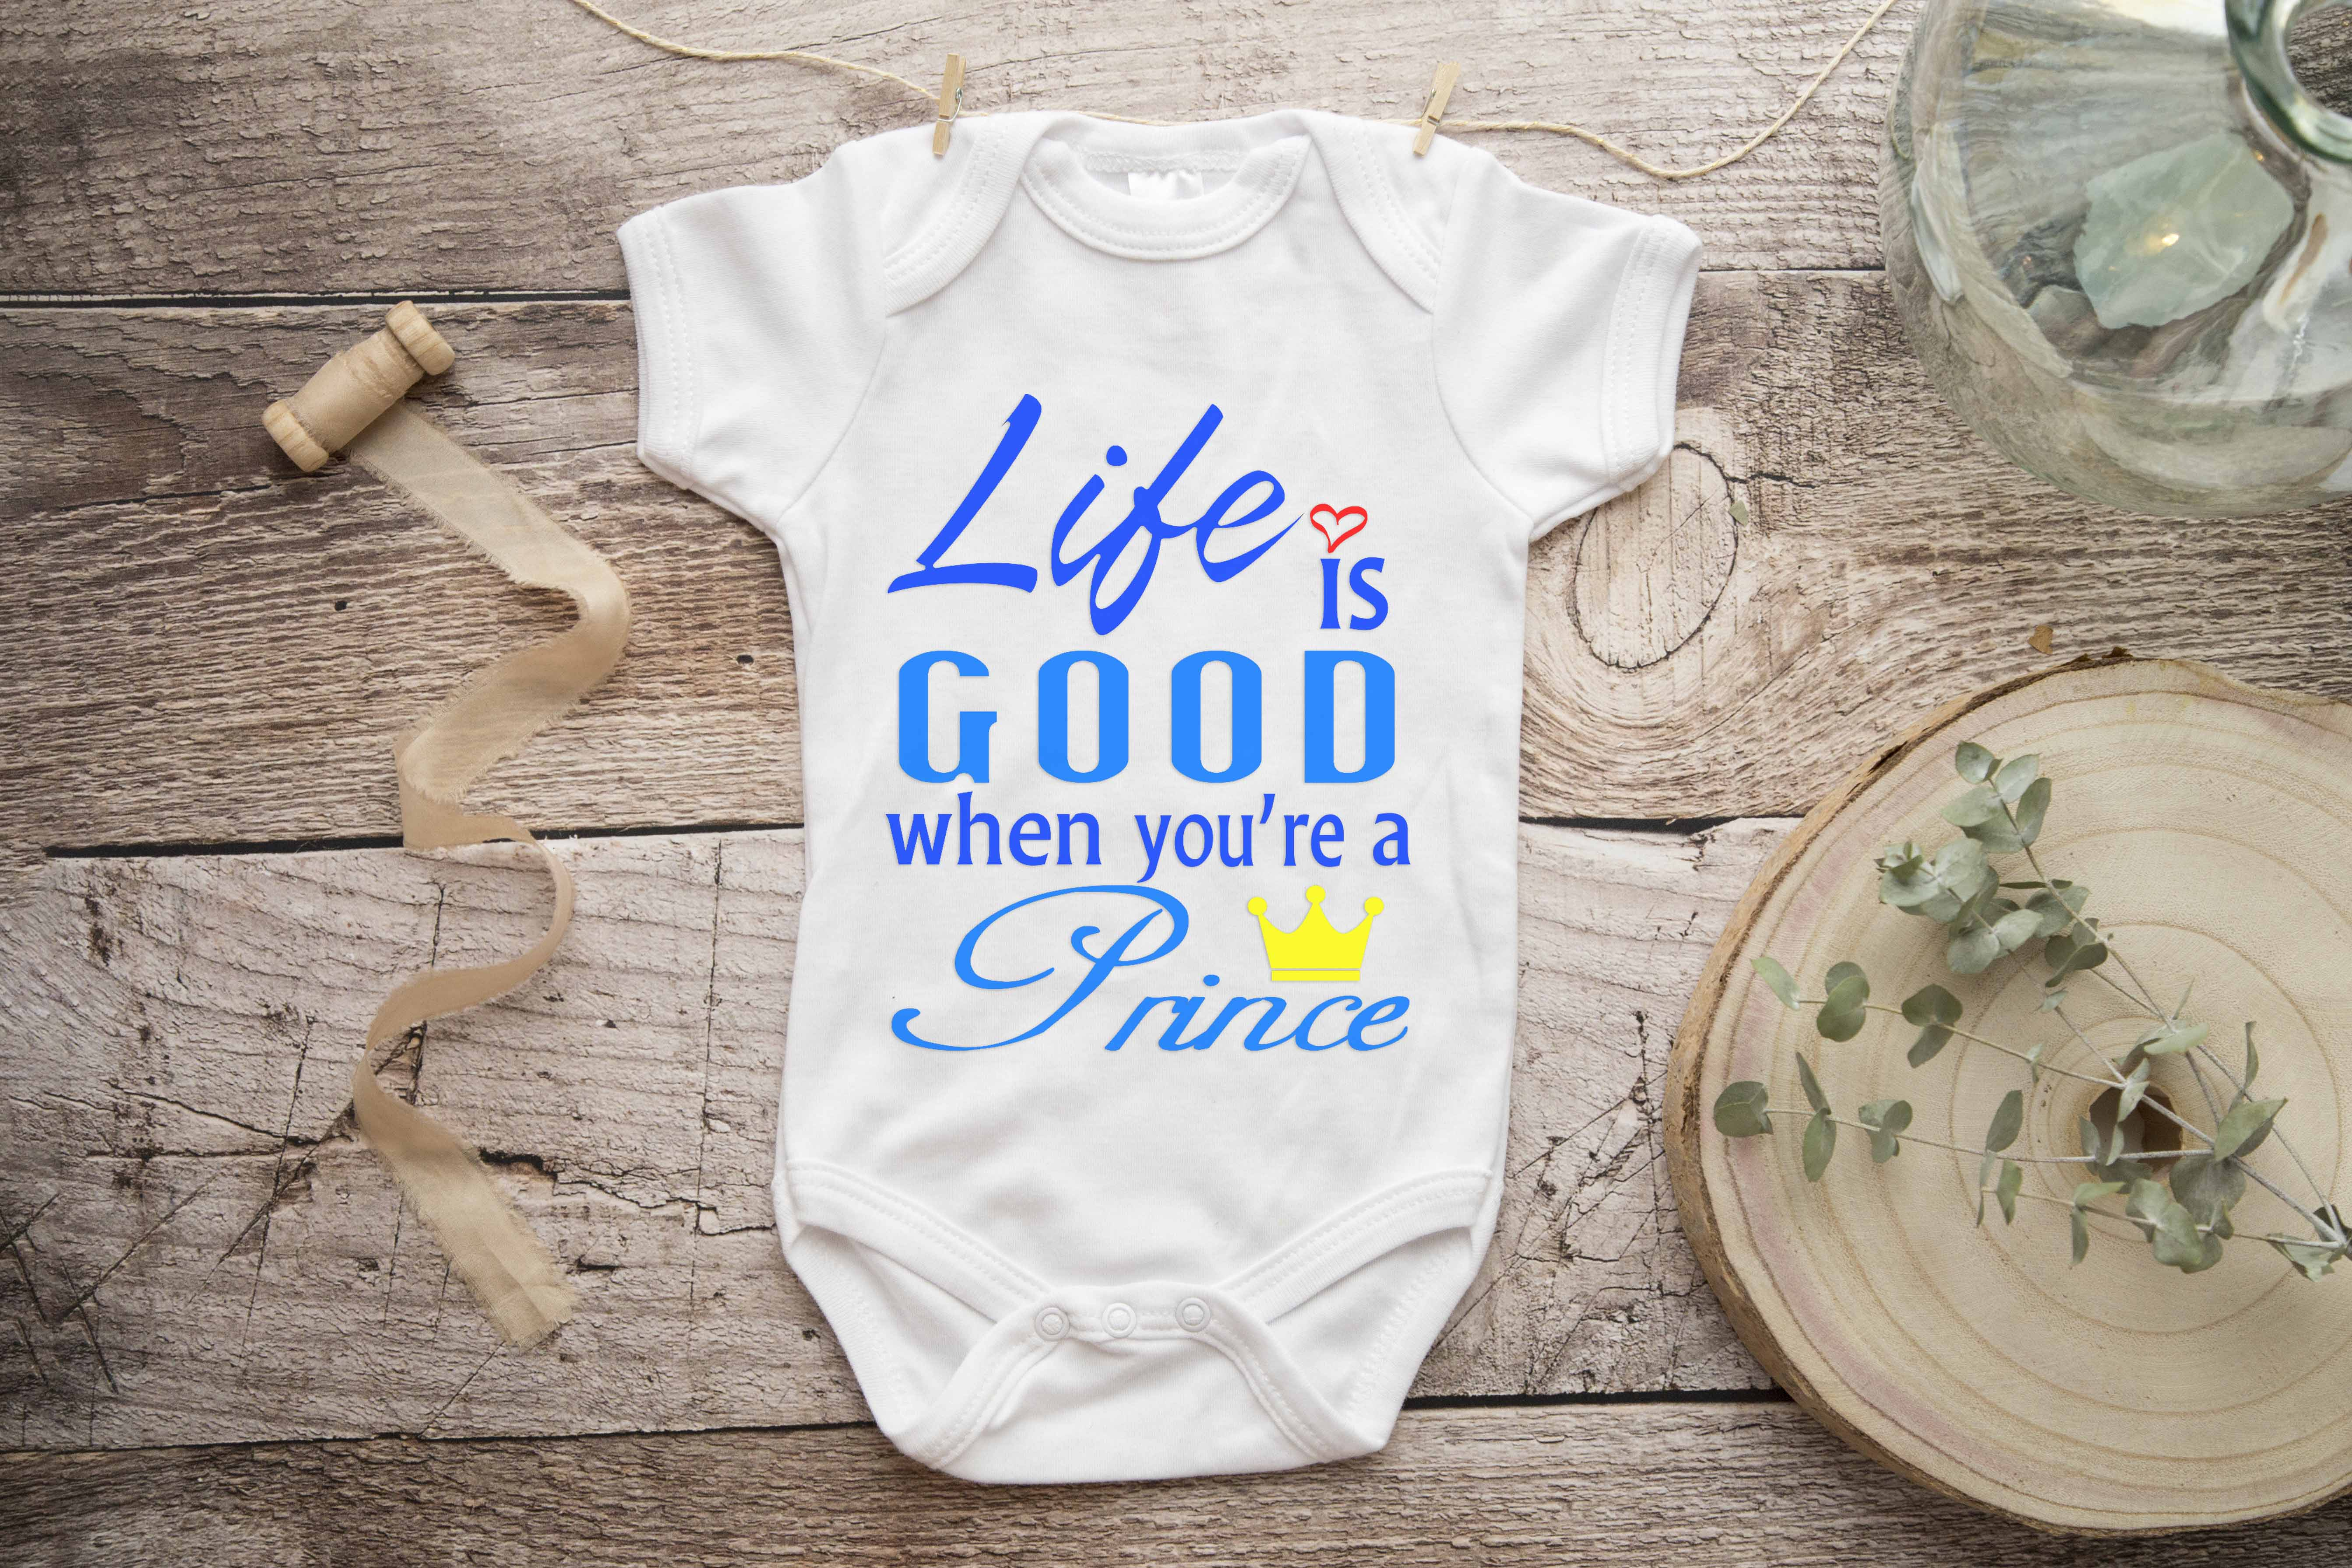 Free Life is Good Prince SVG File